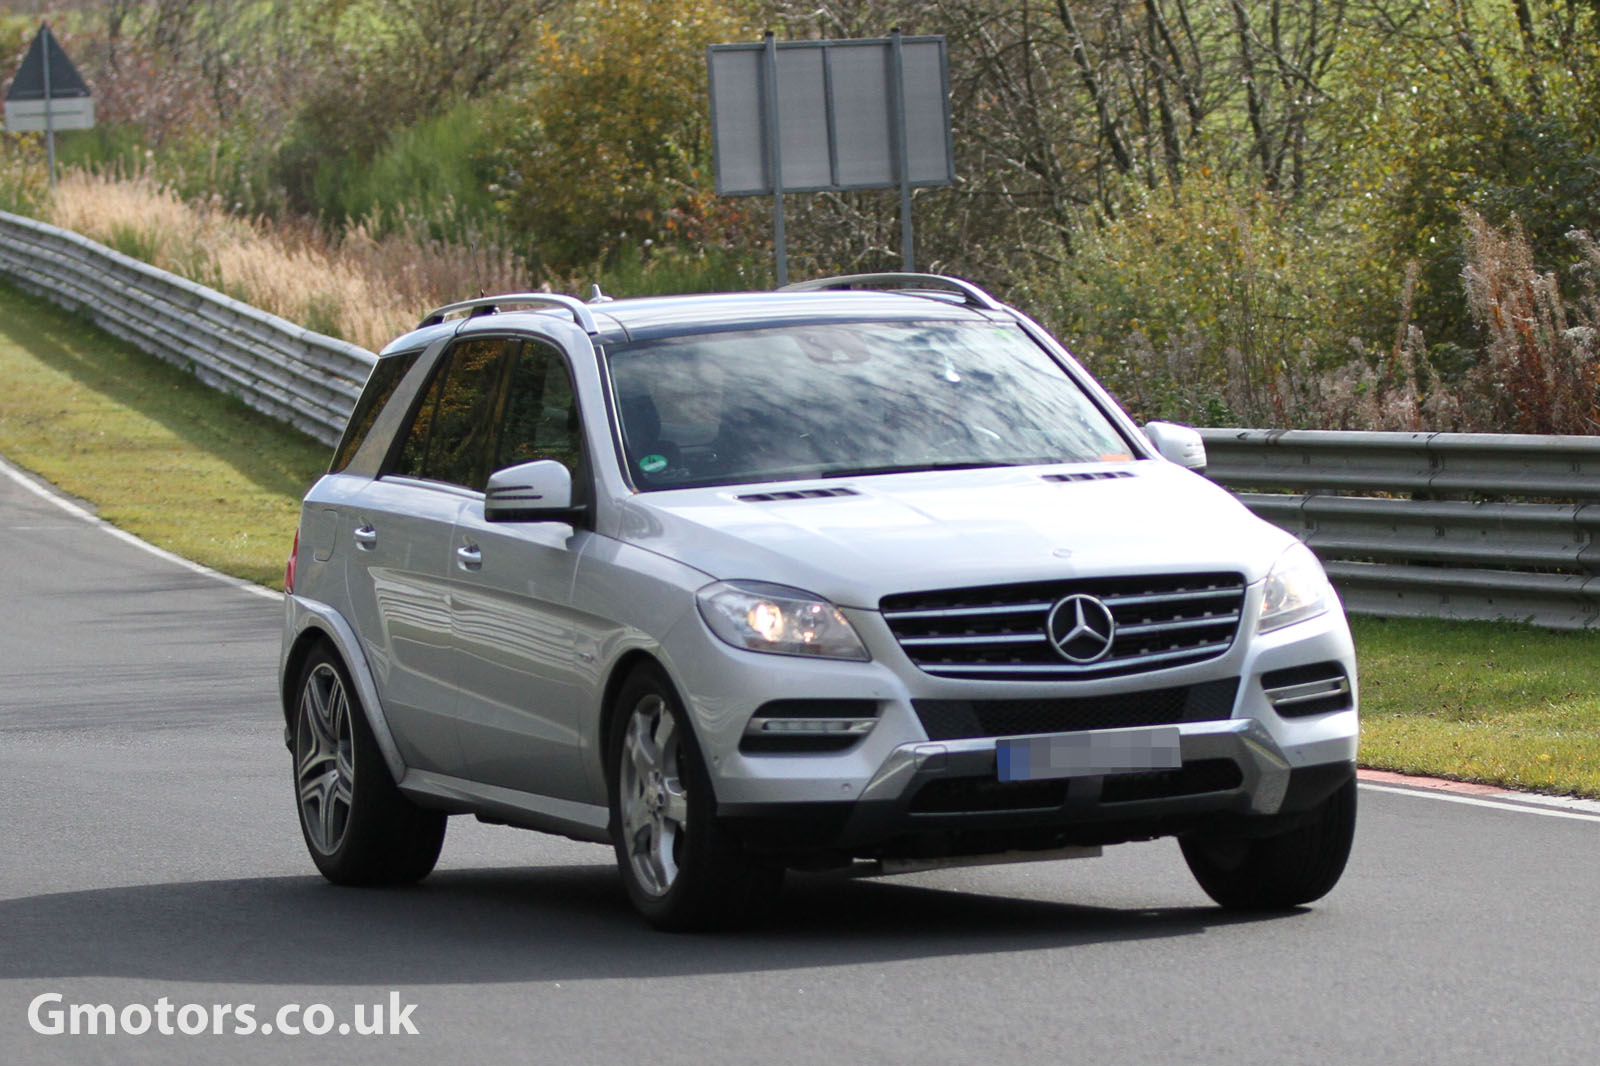 2015 - [Mercedes] GLE Coupé [C292] - Page 2 Mercedes-Benz-MLC-Chassis-Testing-Mule-2